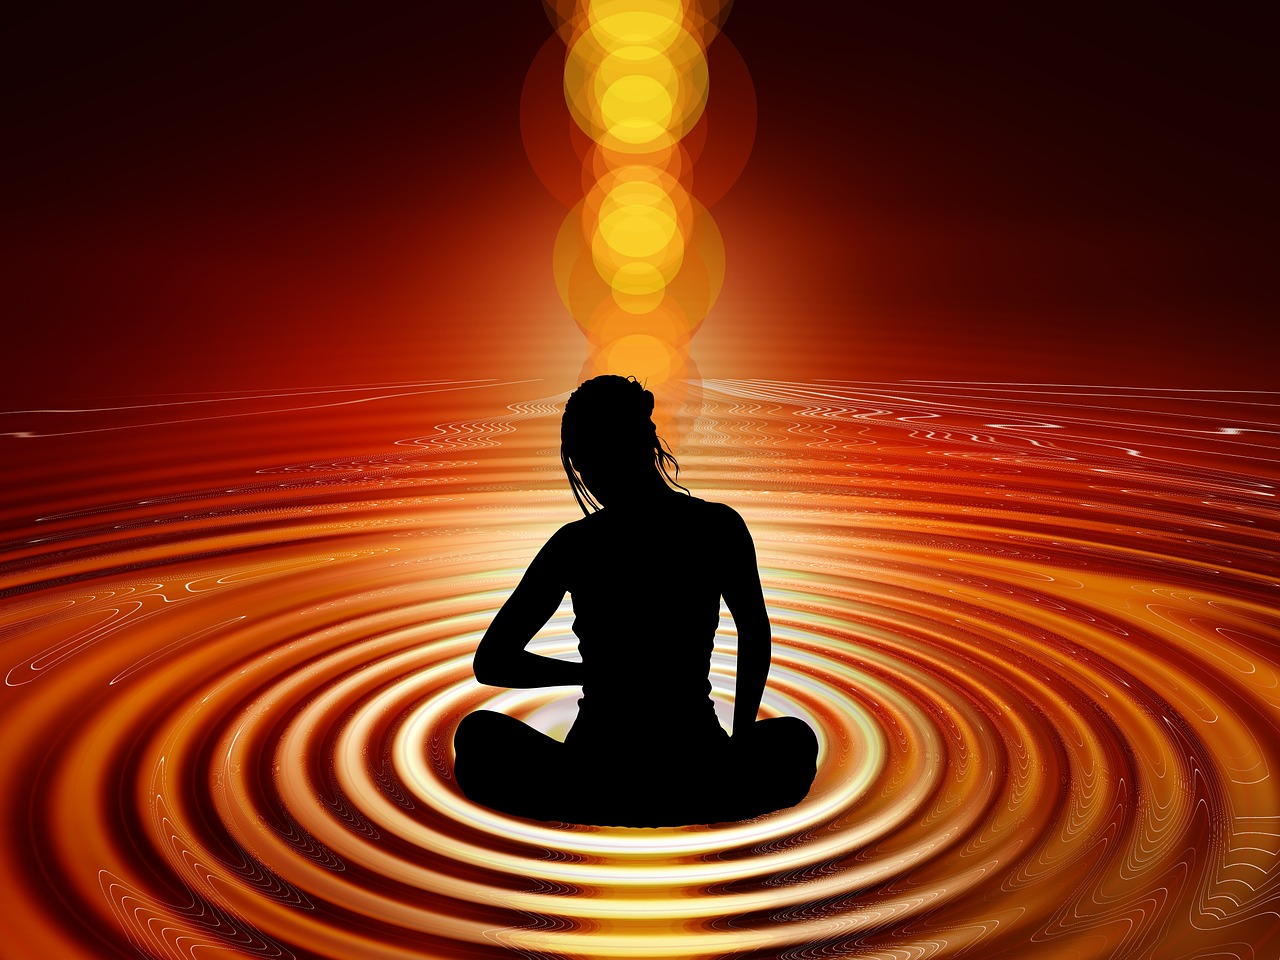 Enlightone: Enlightenment And Healing, The Shaman's & Jungian Way